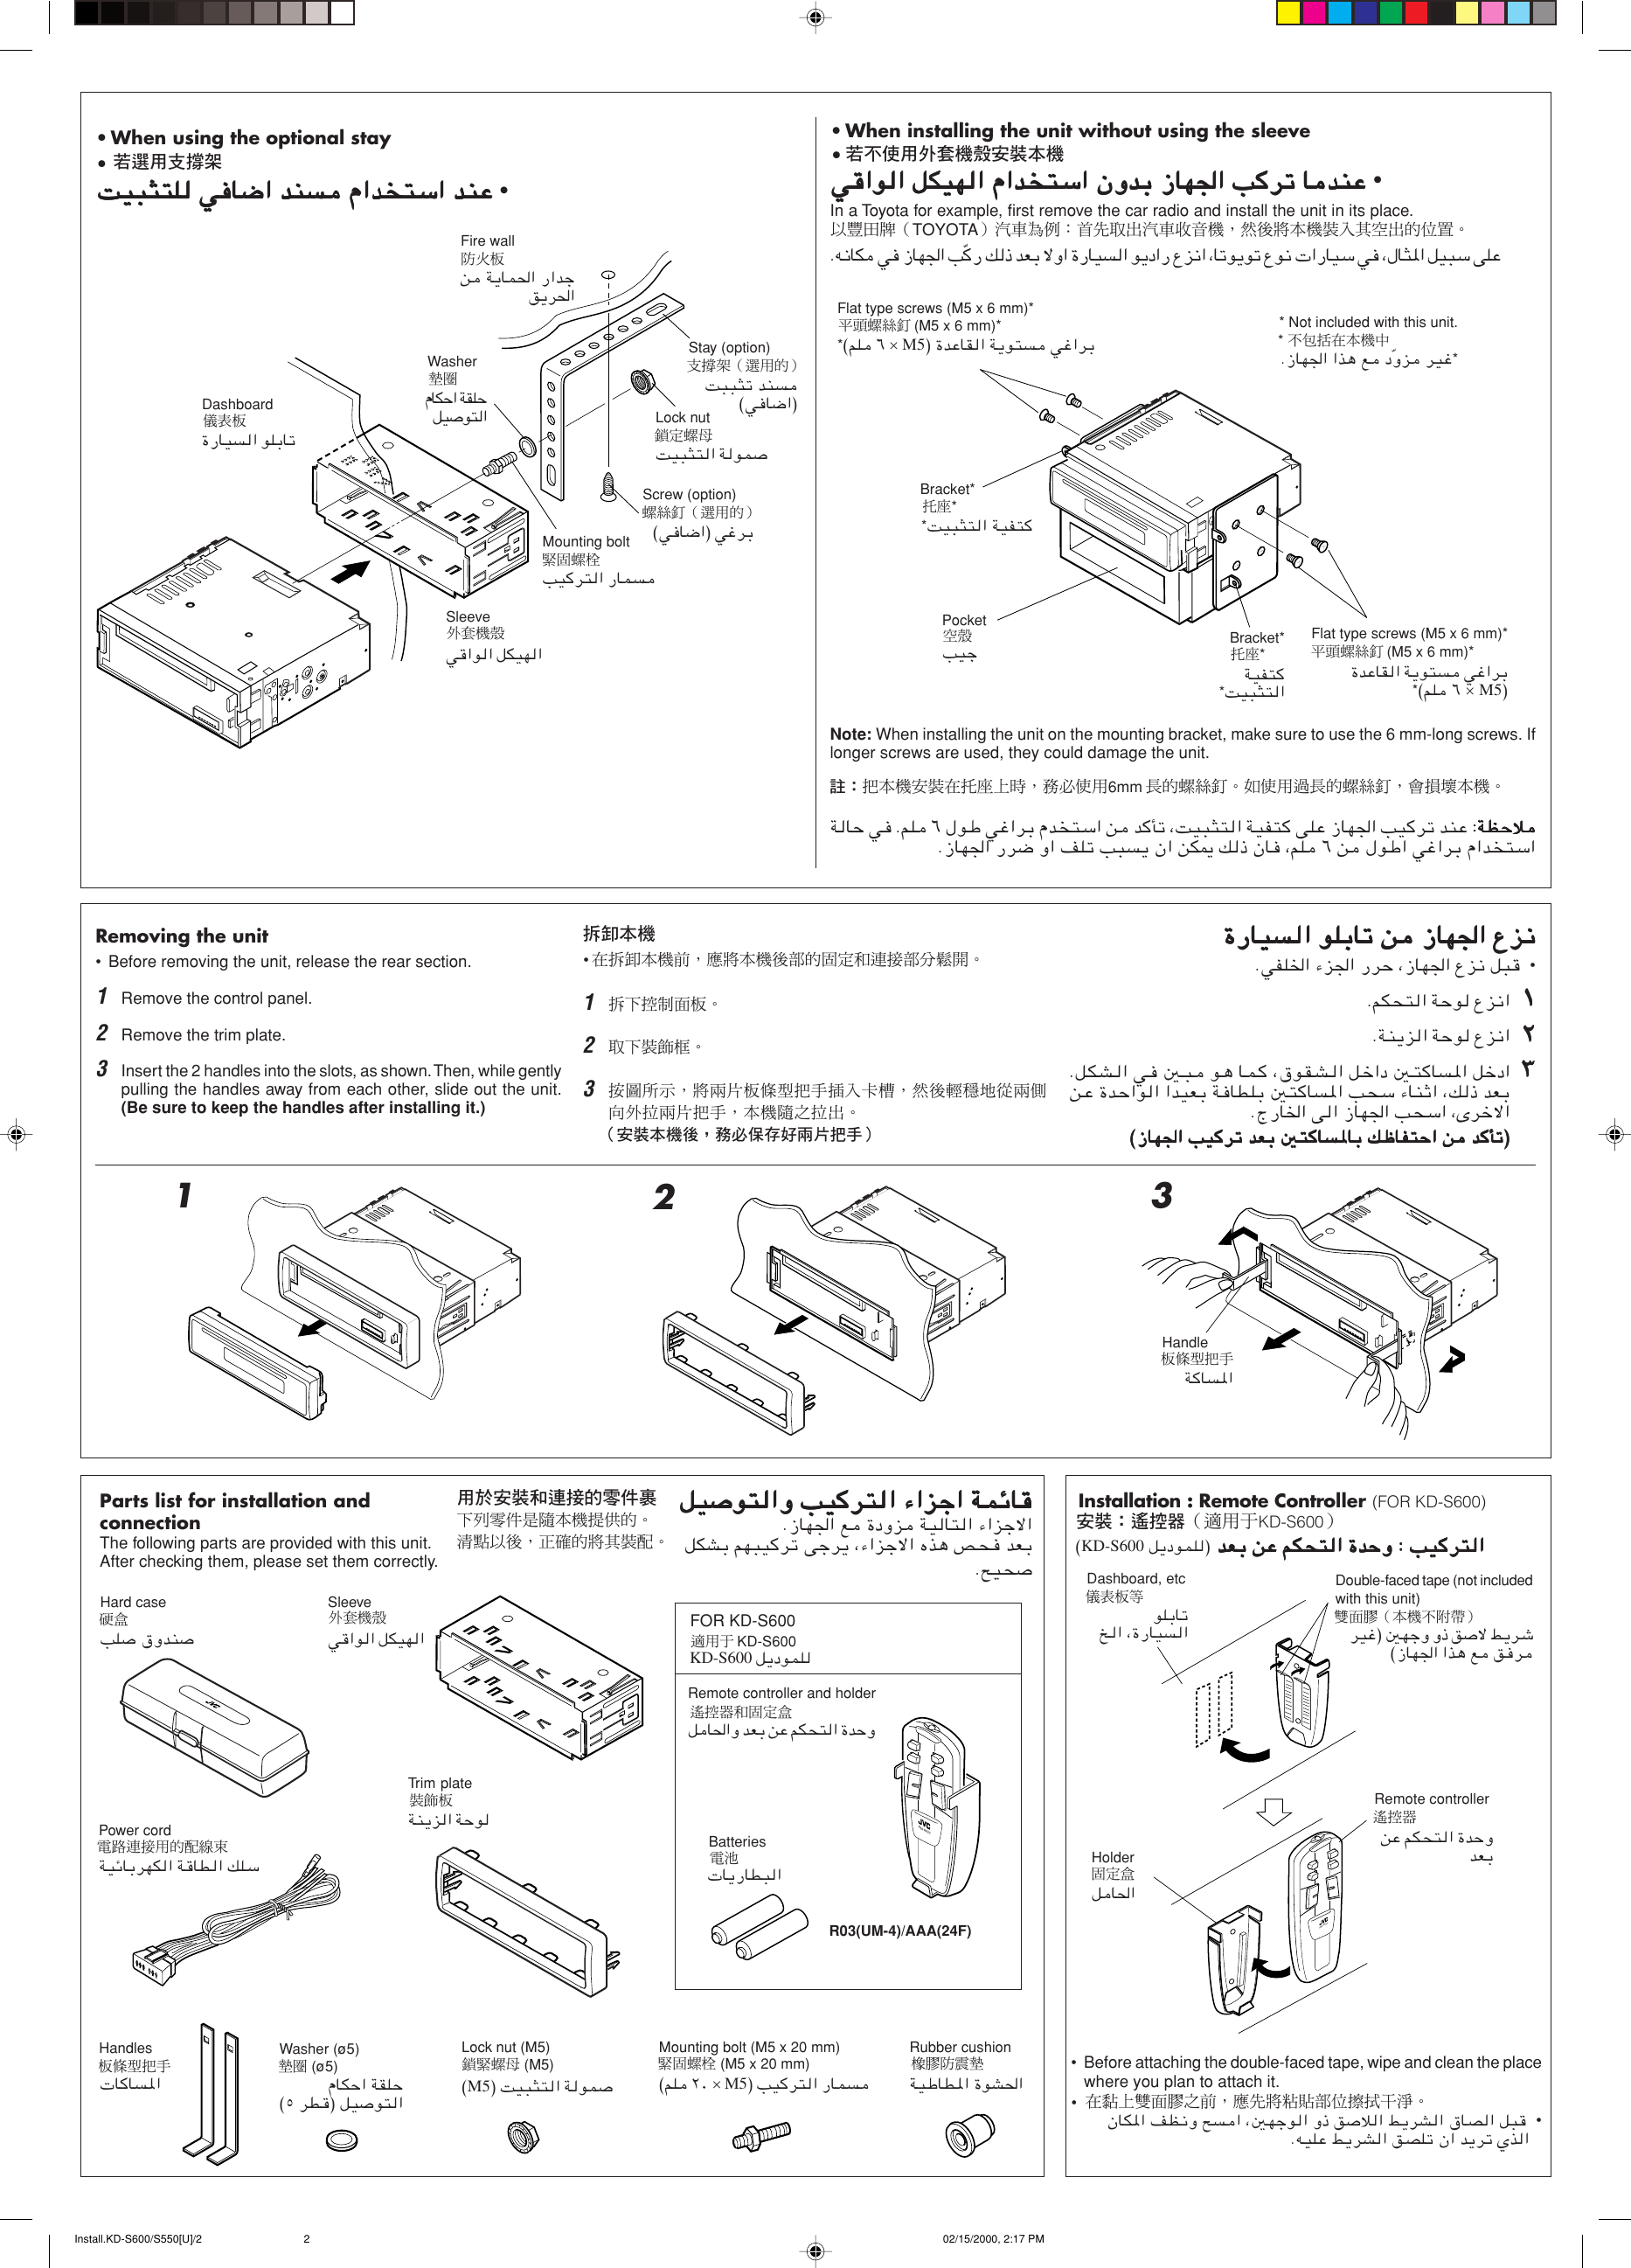 [ZSVE_7041]  4E3 Kenwood Kdc 152 Wiring Diagram Elegant Kenwood Kdc 352u Wiring  Diagram20 Fitfathers Of Kenwood Kdc 152 Wiring Diagram | Wiring Library | Kenwood Kdc 352u Wiring Diagram |  | Wiring Library